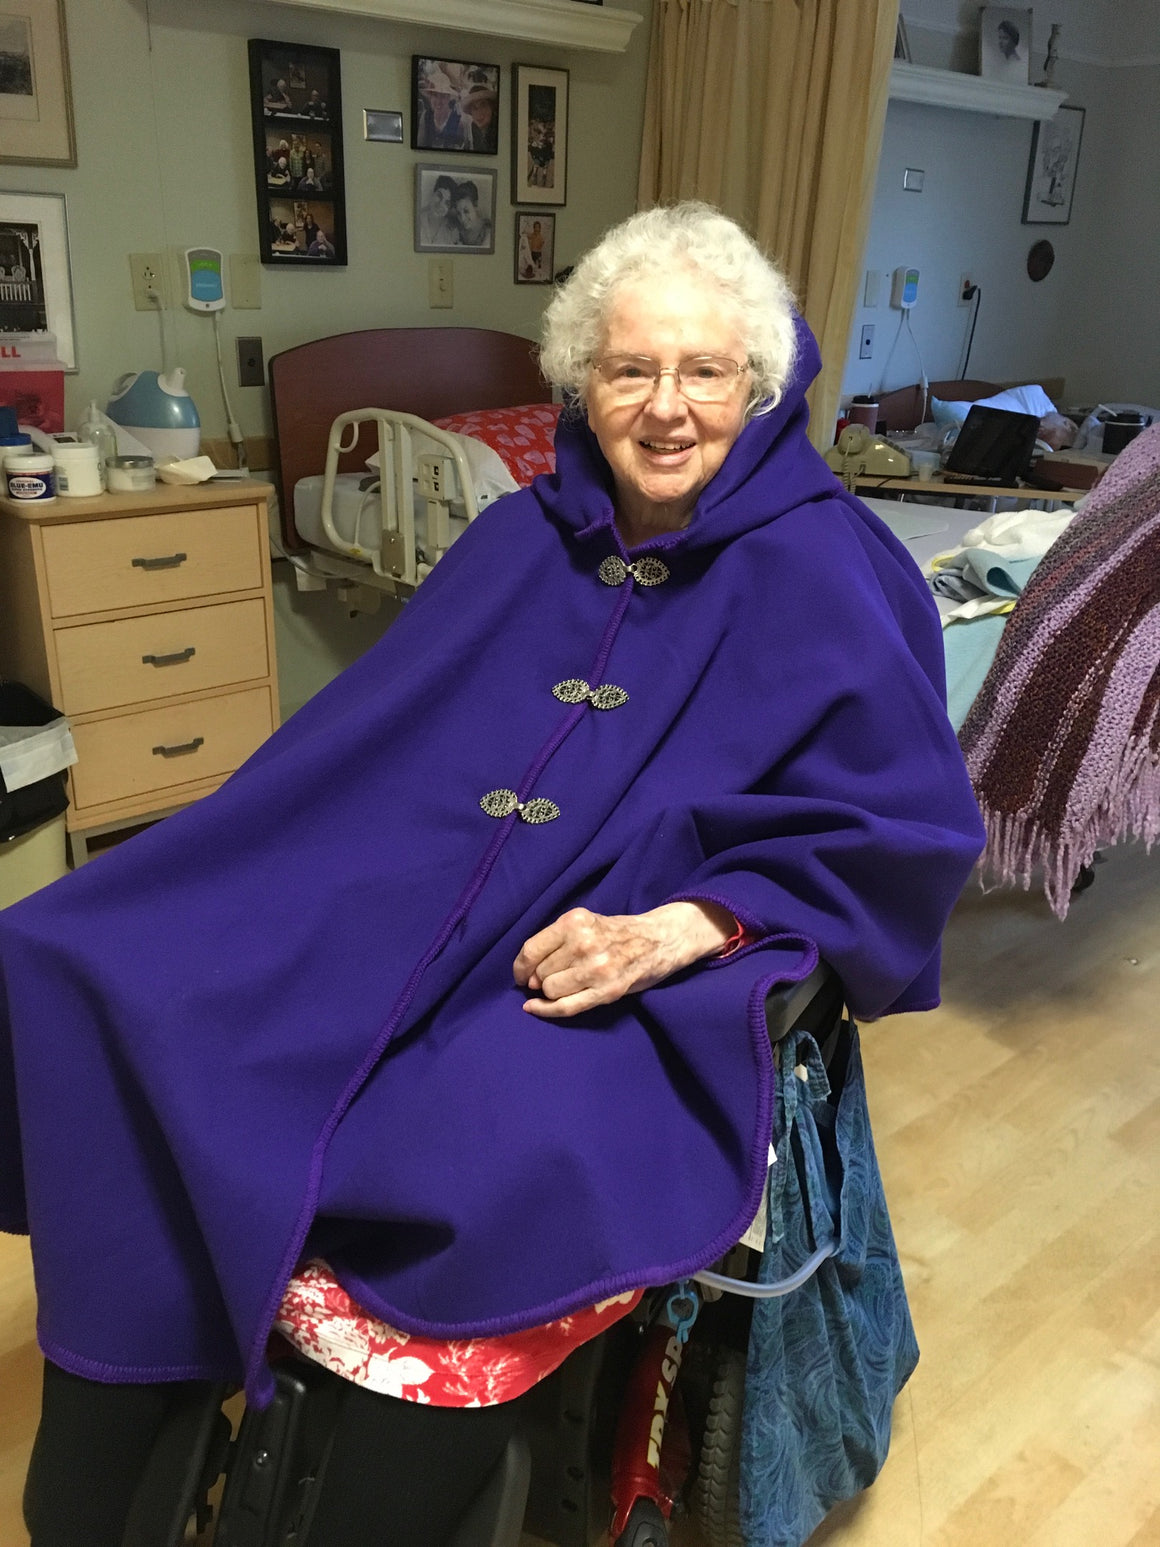 Adaptive Cape - Custom designed for Wheel chair comfort